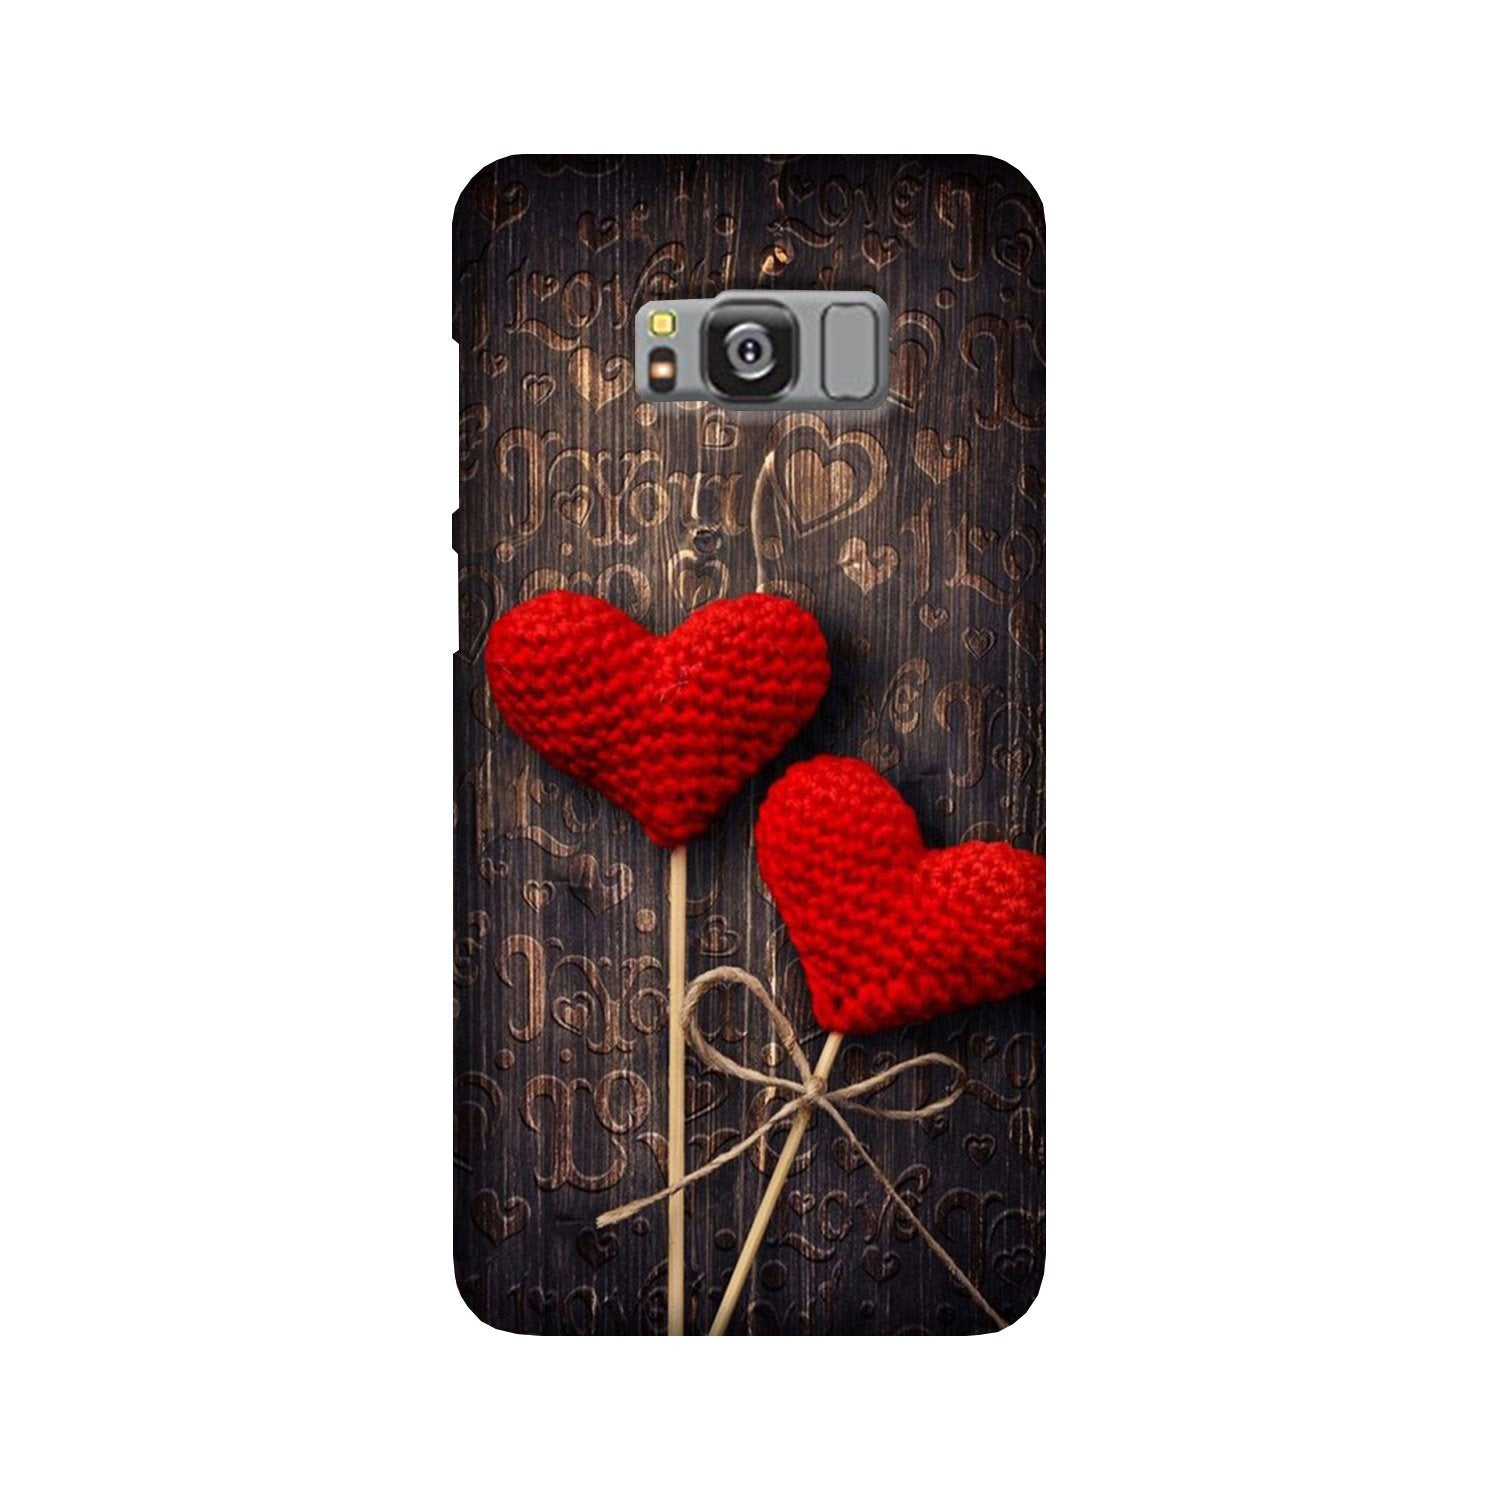 Red Hearts Case for Galaxy S8